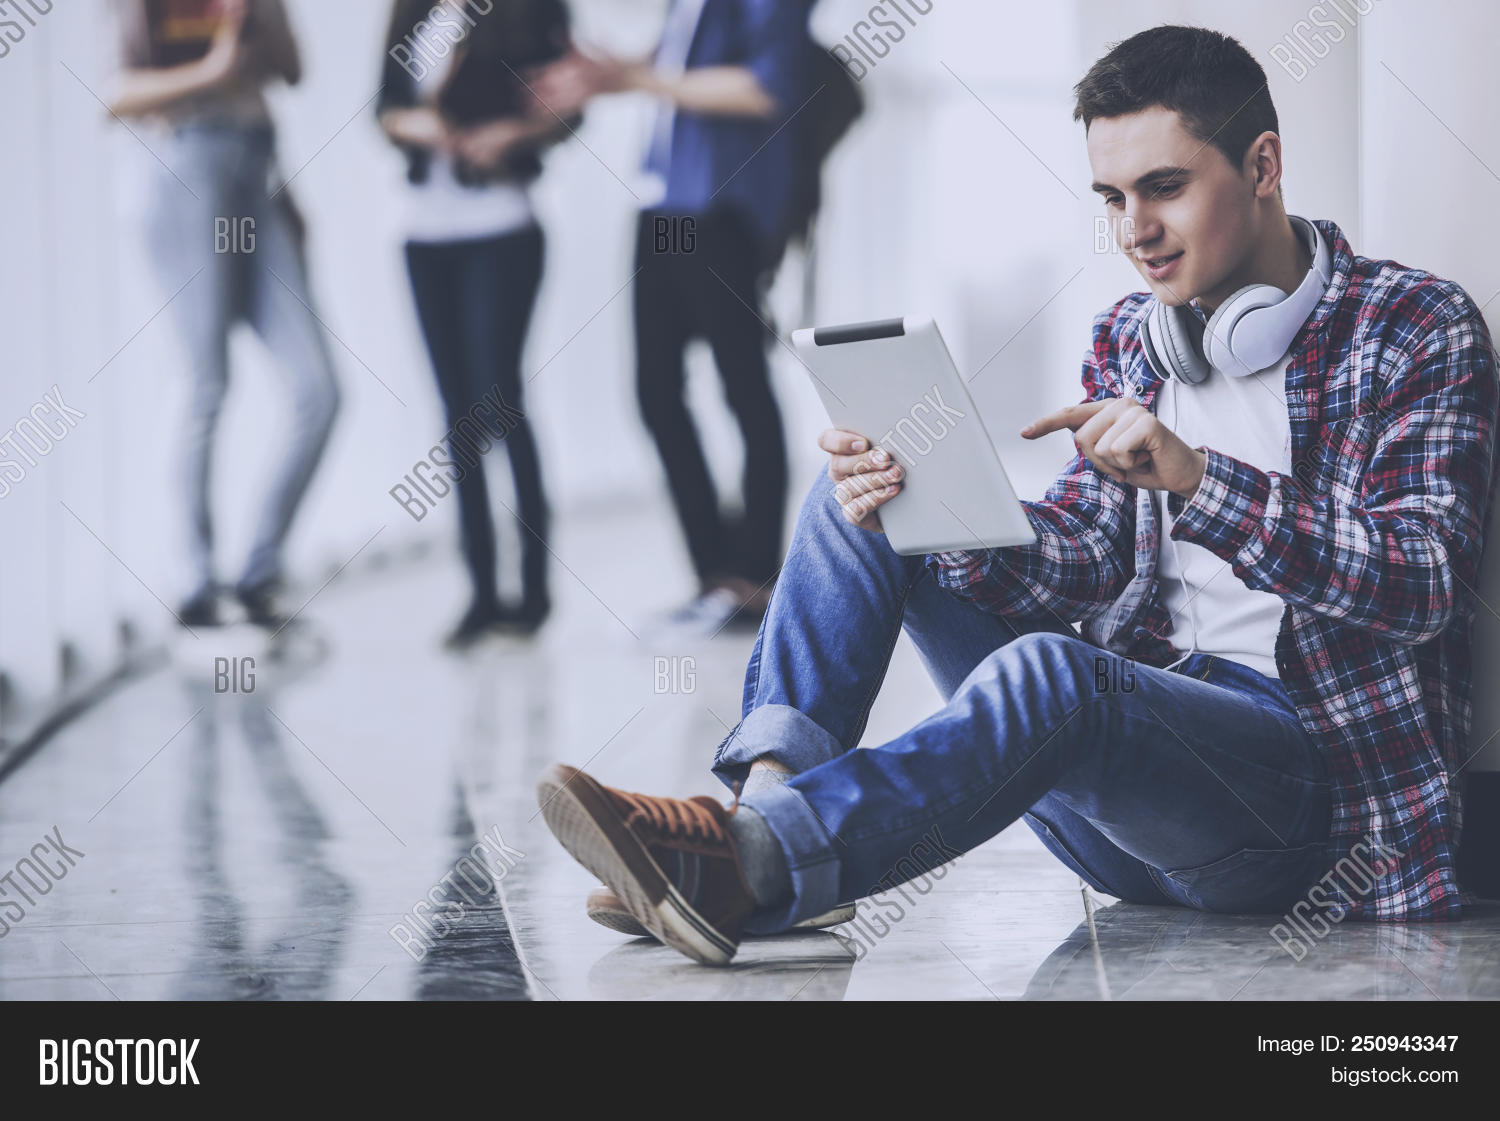 academic,adolescent,attractive,beautiful,book,boy,campus,casual,closeup,college,confident,education,expressing,floor,graduate,hall,happy,headphones,higher,holding,homework,indoor,learning,looking,male,man,music,people,person,portrait,posing,positivity,pretty,reader,science,single,smart,smile,smilling,student,study,studying,success,tablet,technology,teen,textbook,time,white,young